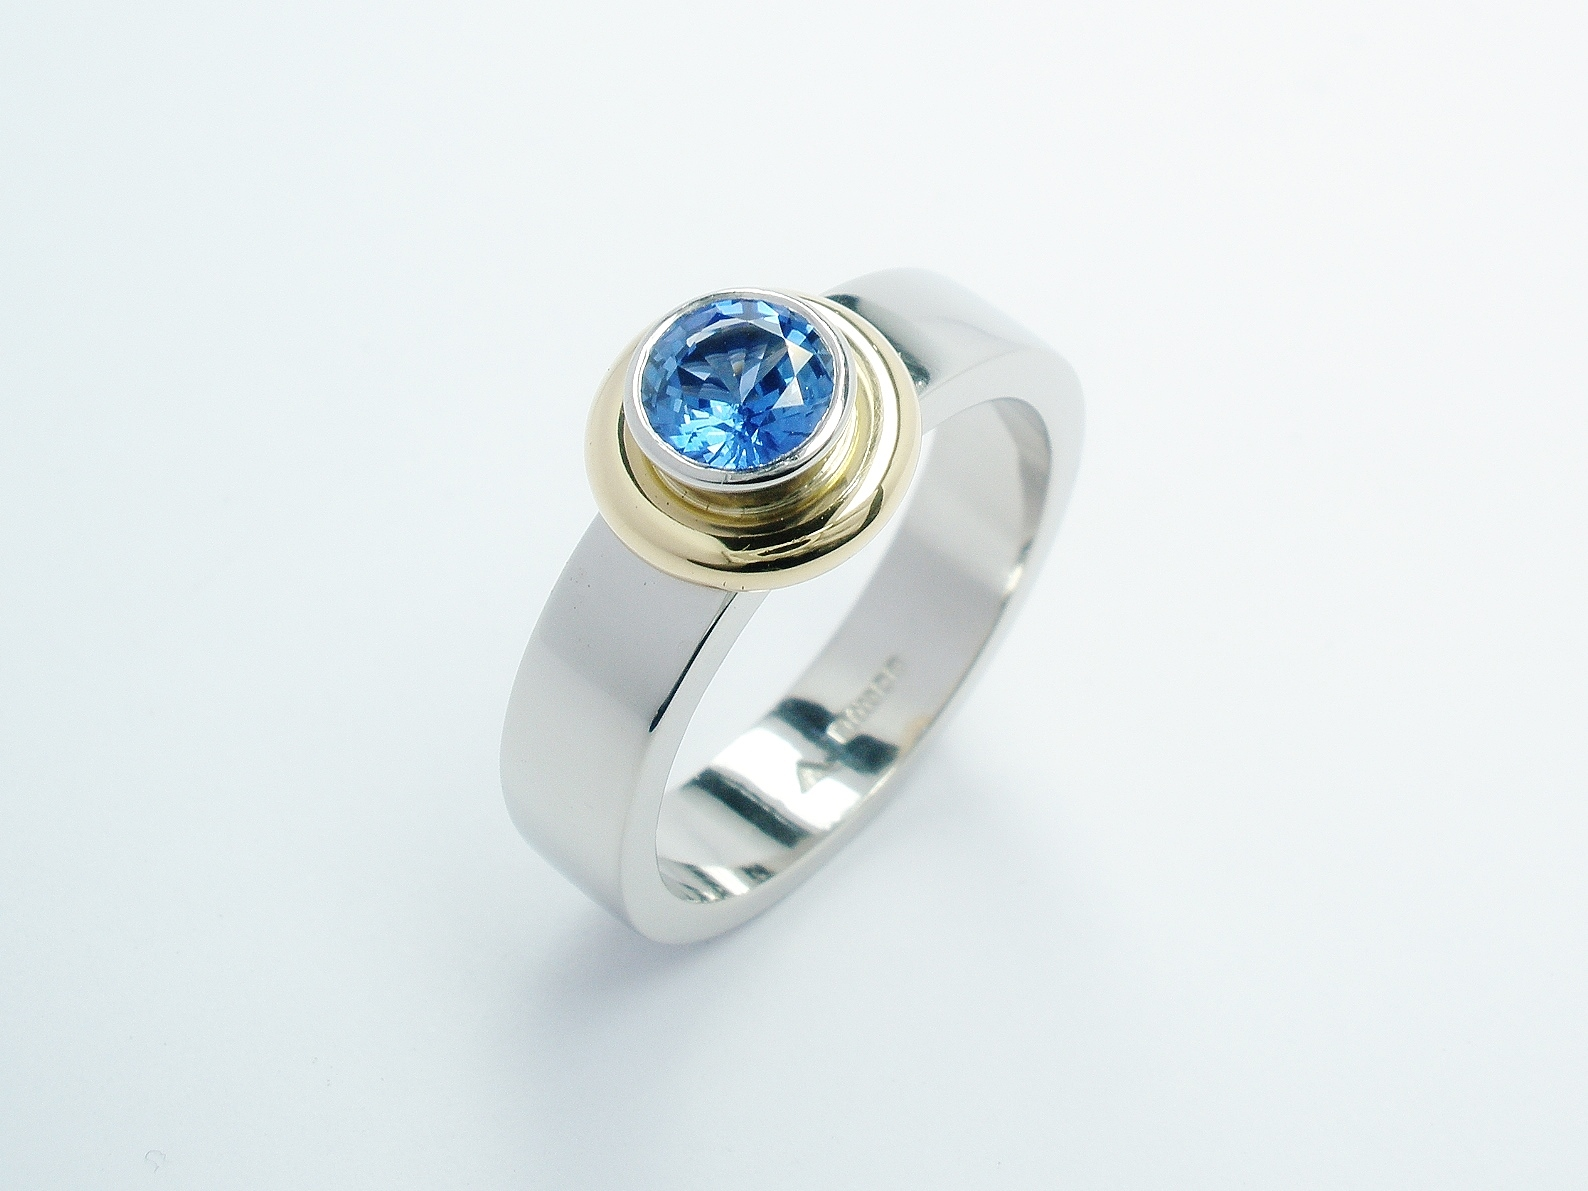 Round sapphire 'doughnut' style ring mounted in palladium, 18ct. yellow gold & platinum.